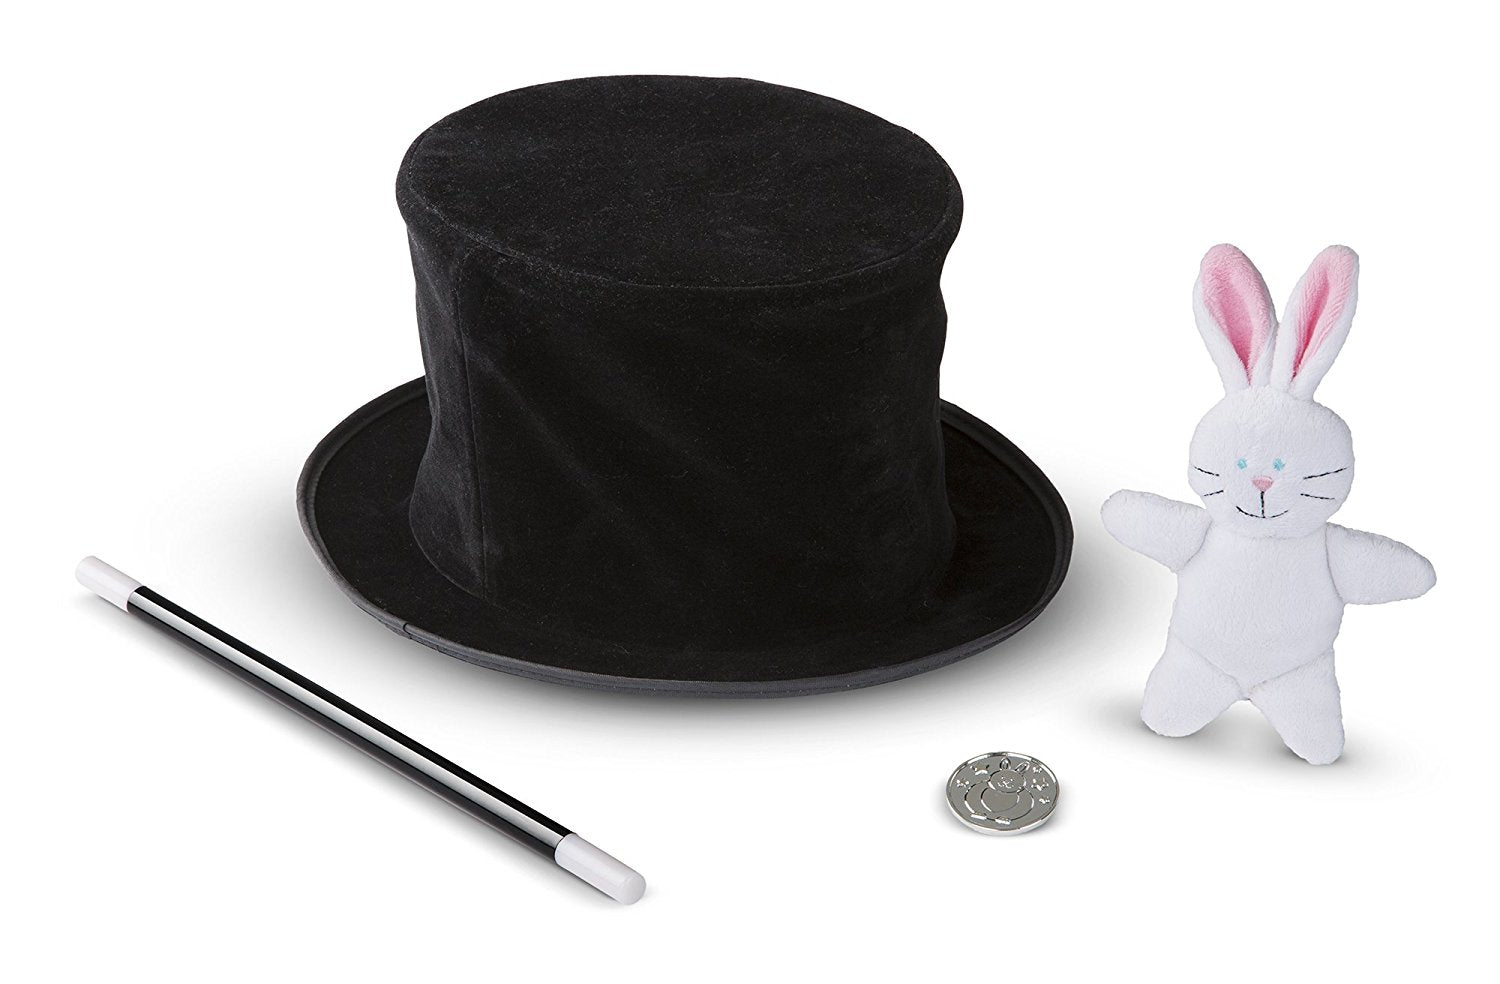 Melissa & Doug and Doug Magic in a Snap! Magician's Pop-Up Hat with Tricks